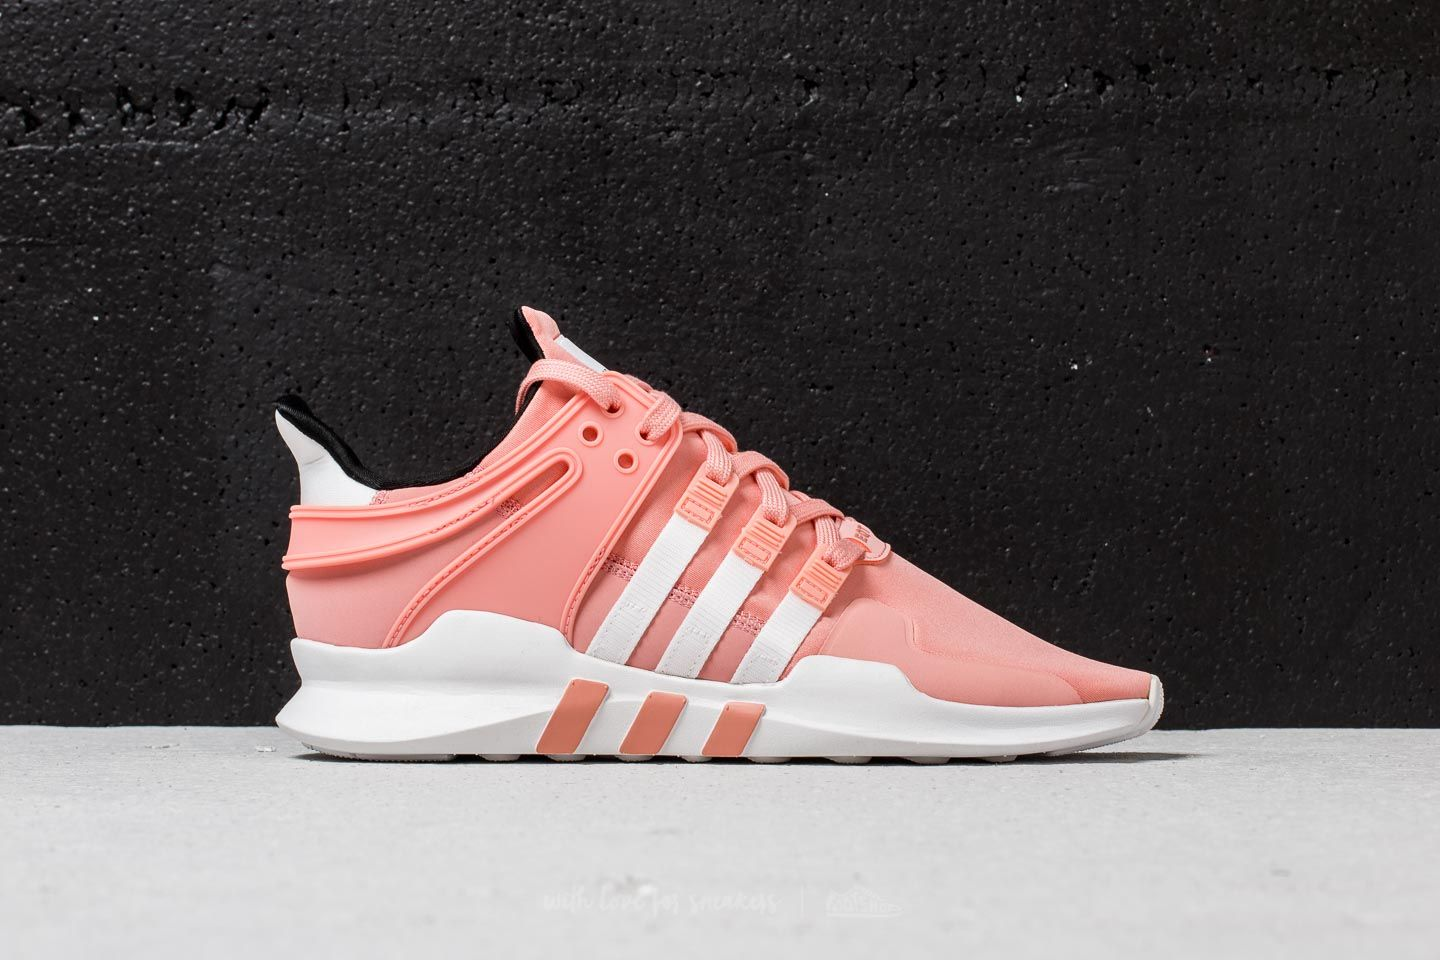 save off 23bbf 0a91b adidas EQT Support ADV Trace Pink Ftw White Core Black at a great price